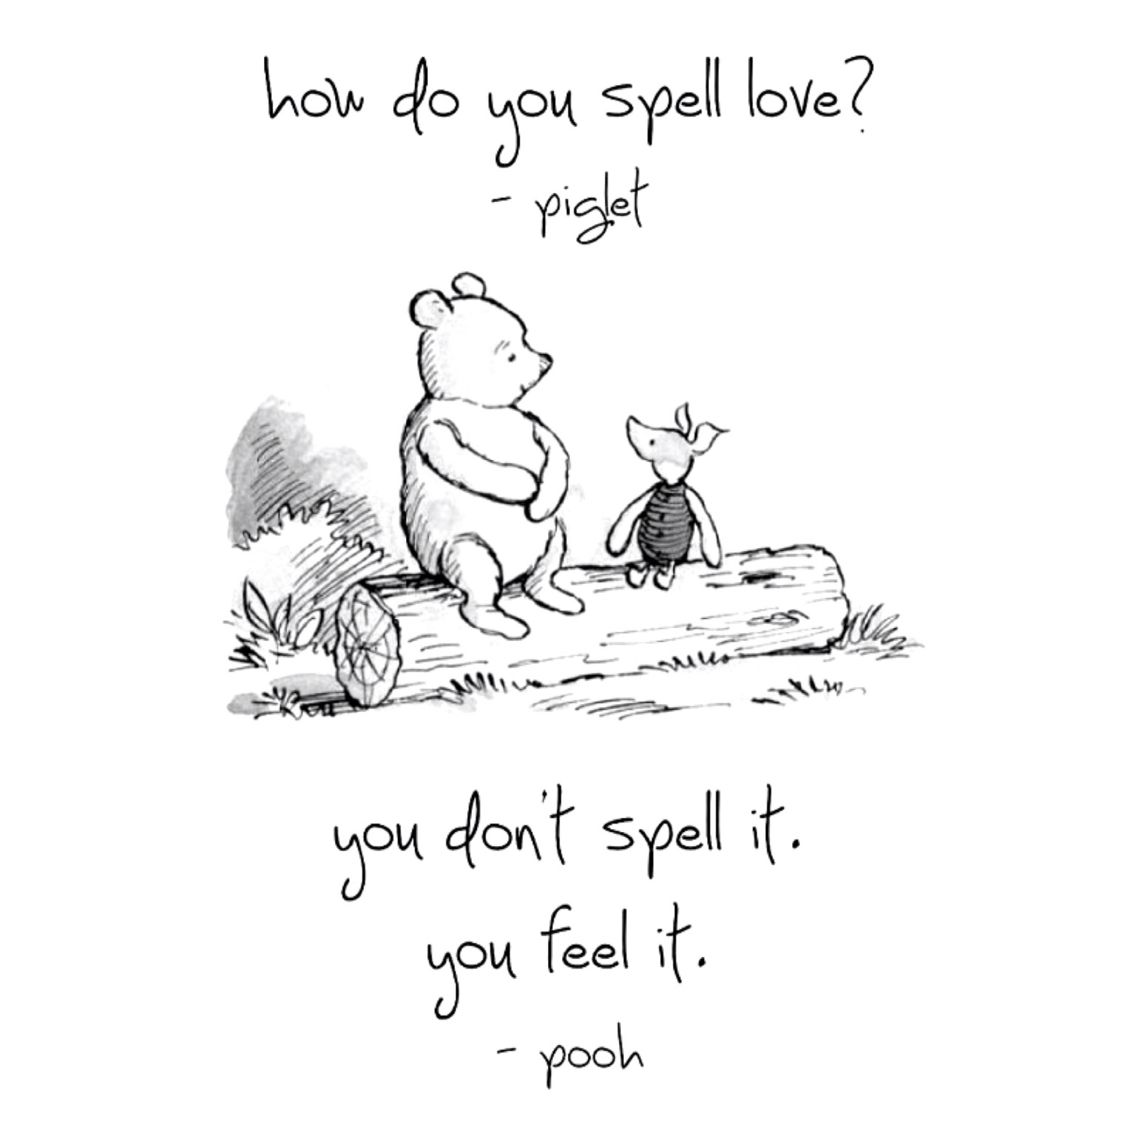 How do you spell love? - Piglet You don't spell it. You ... - photo#20